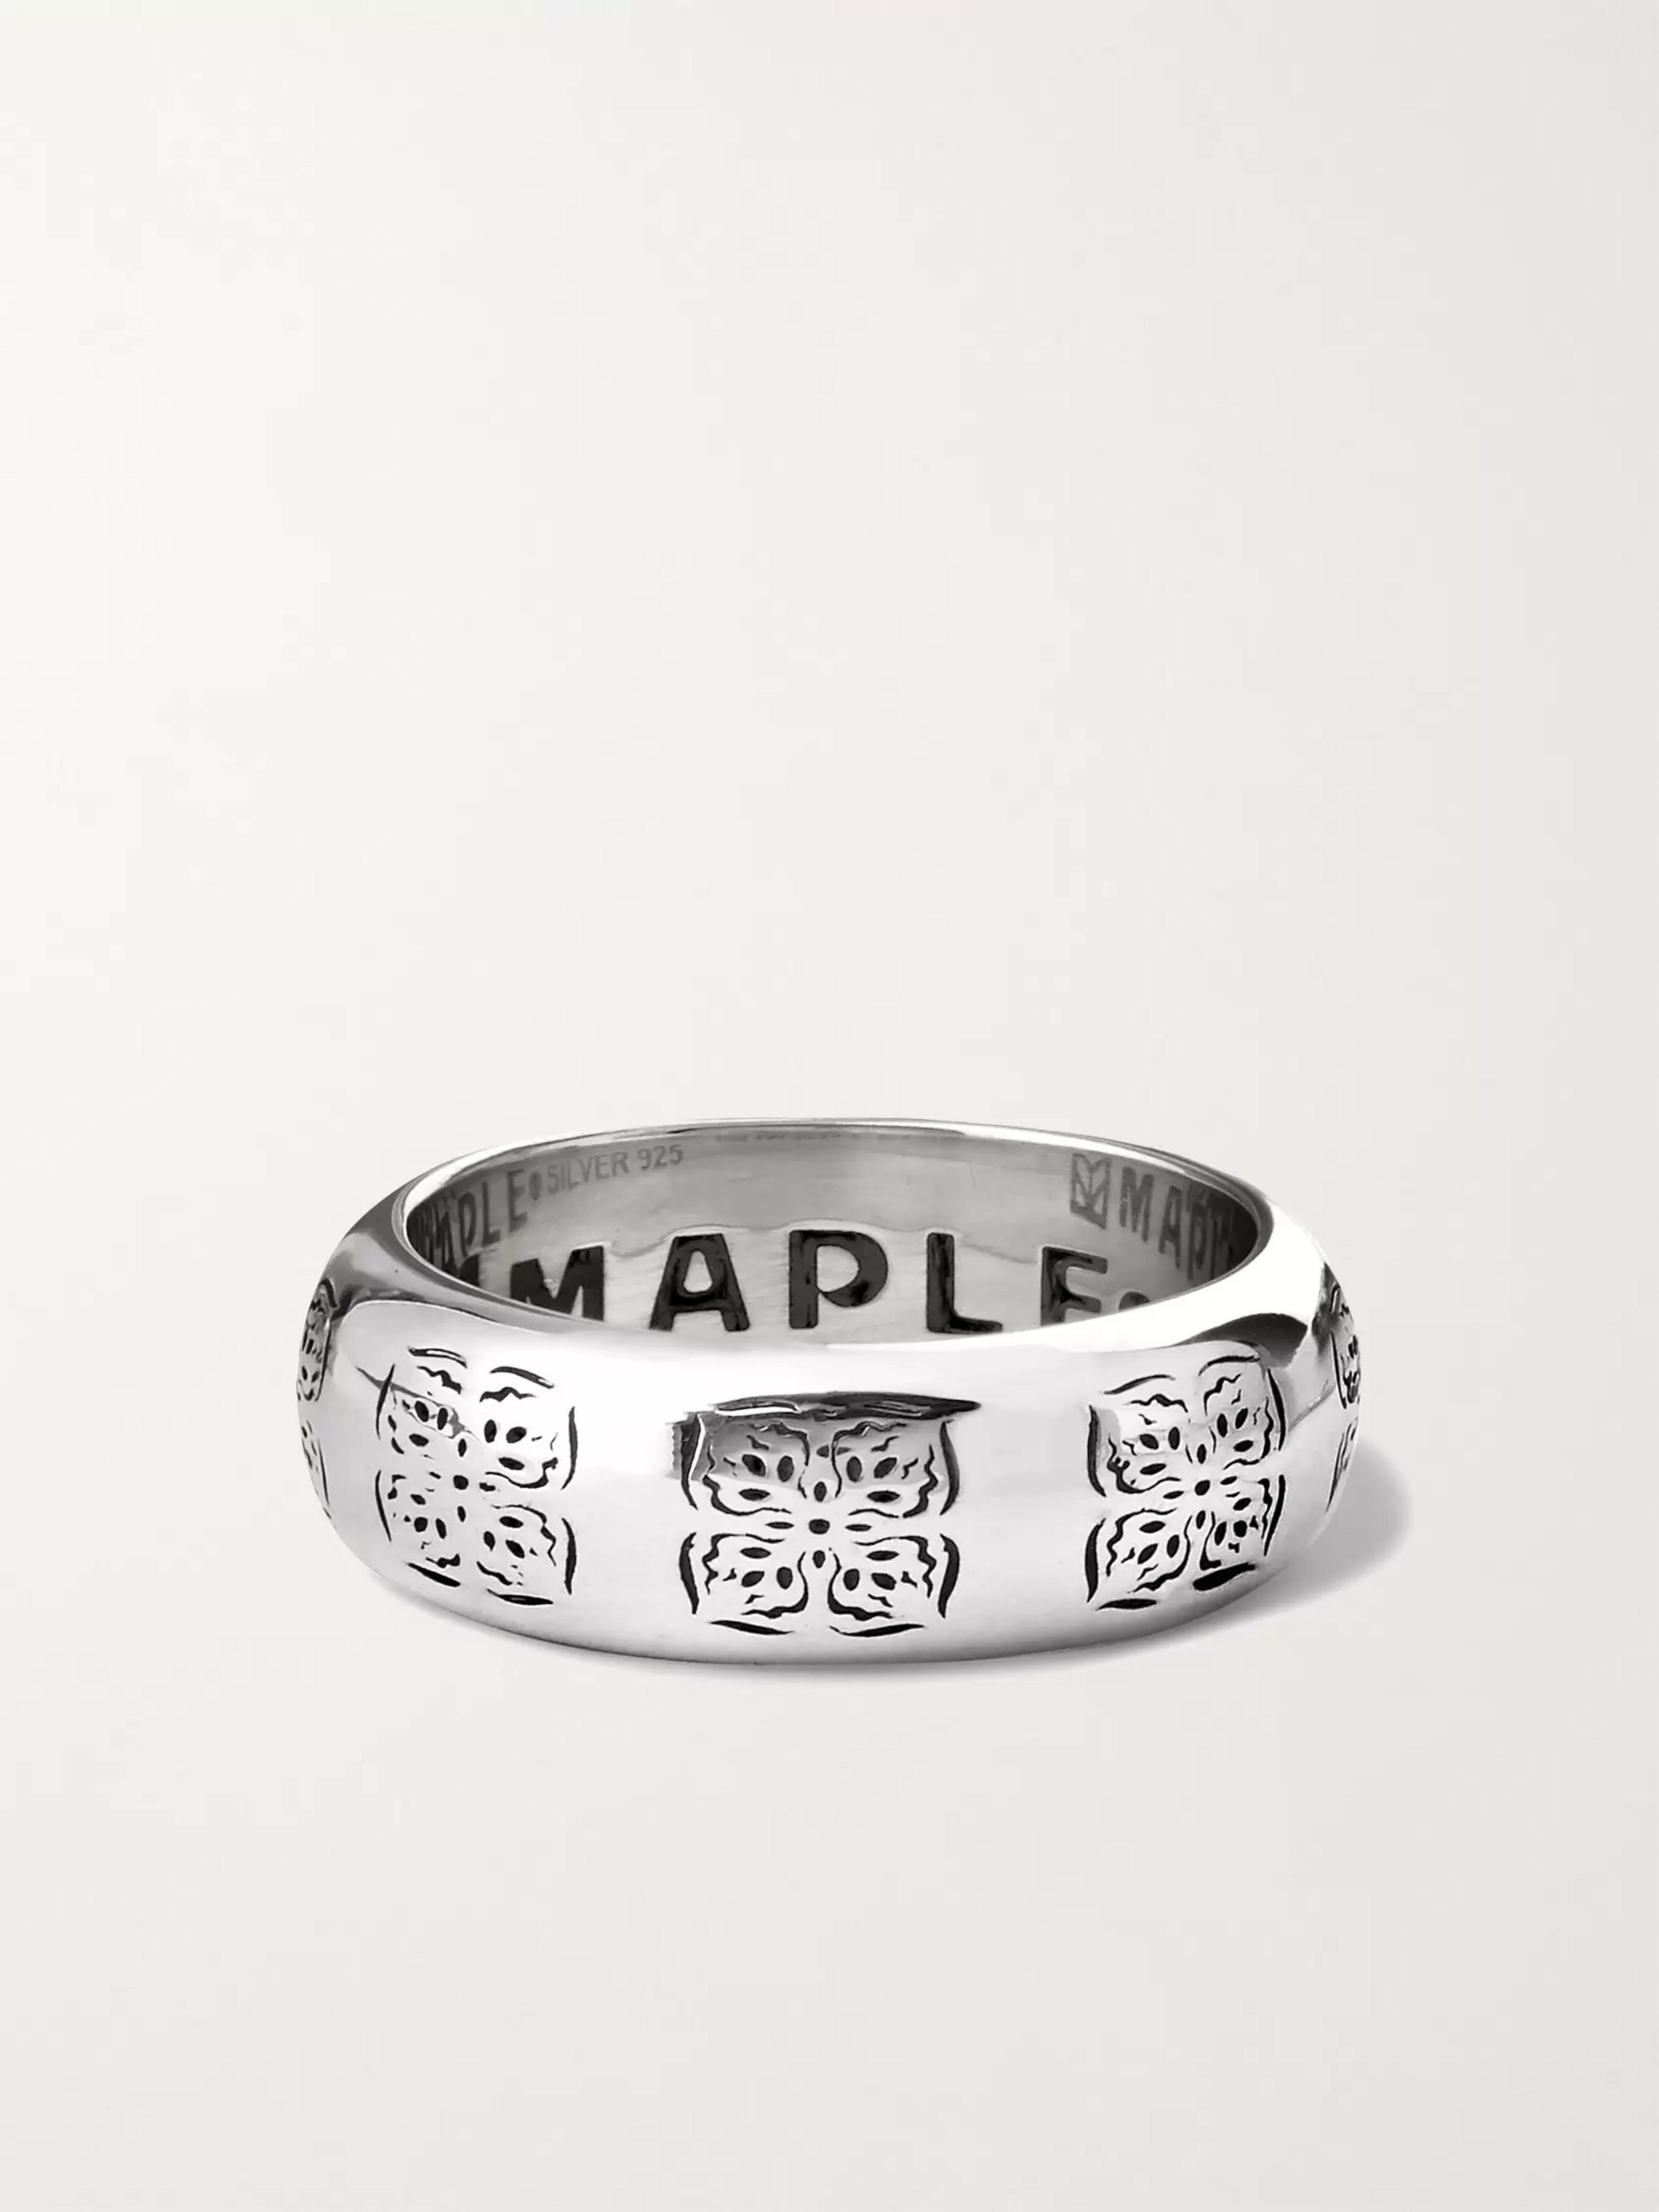 MAPLE Engraved Silver Ring